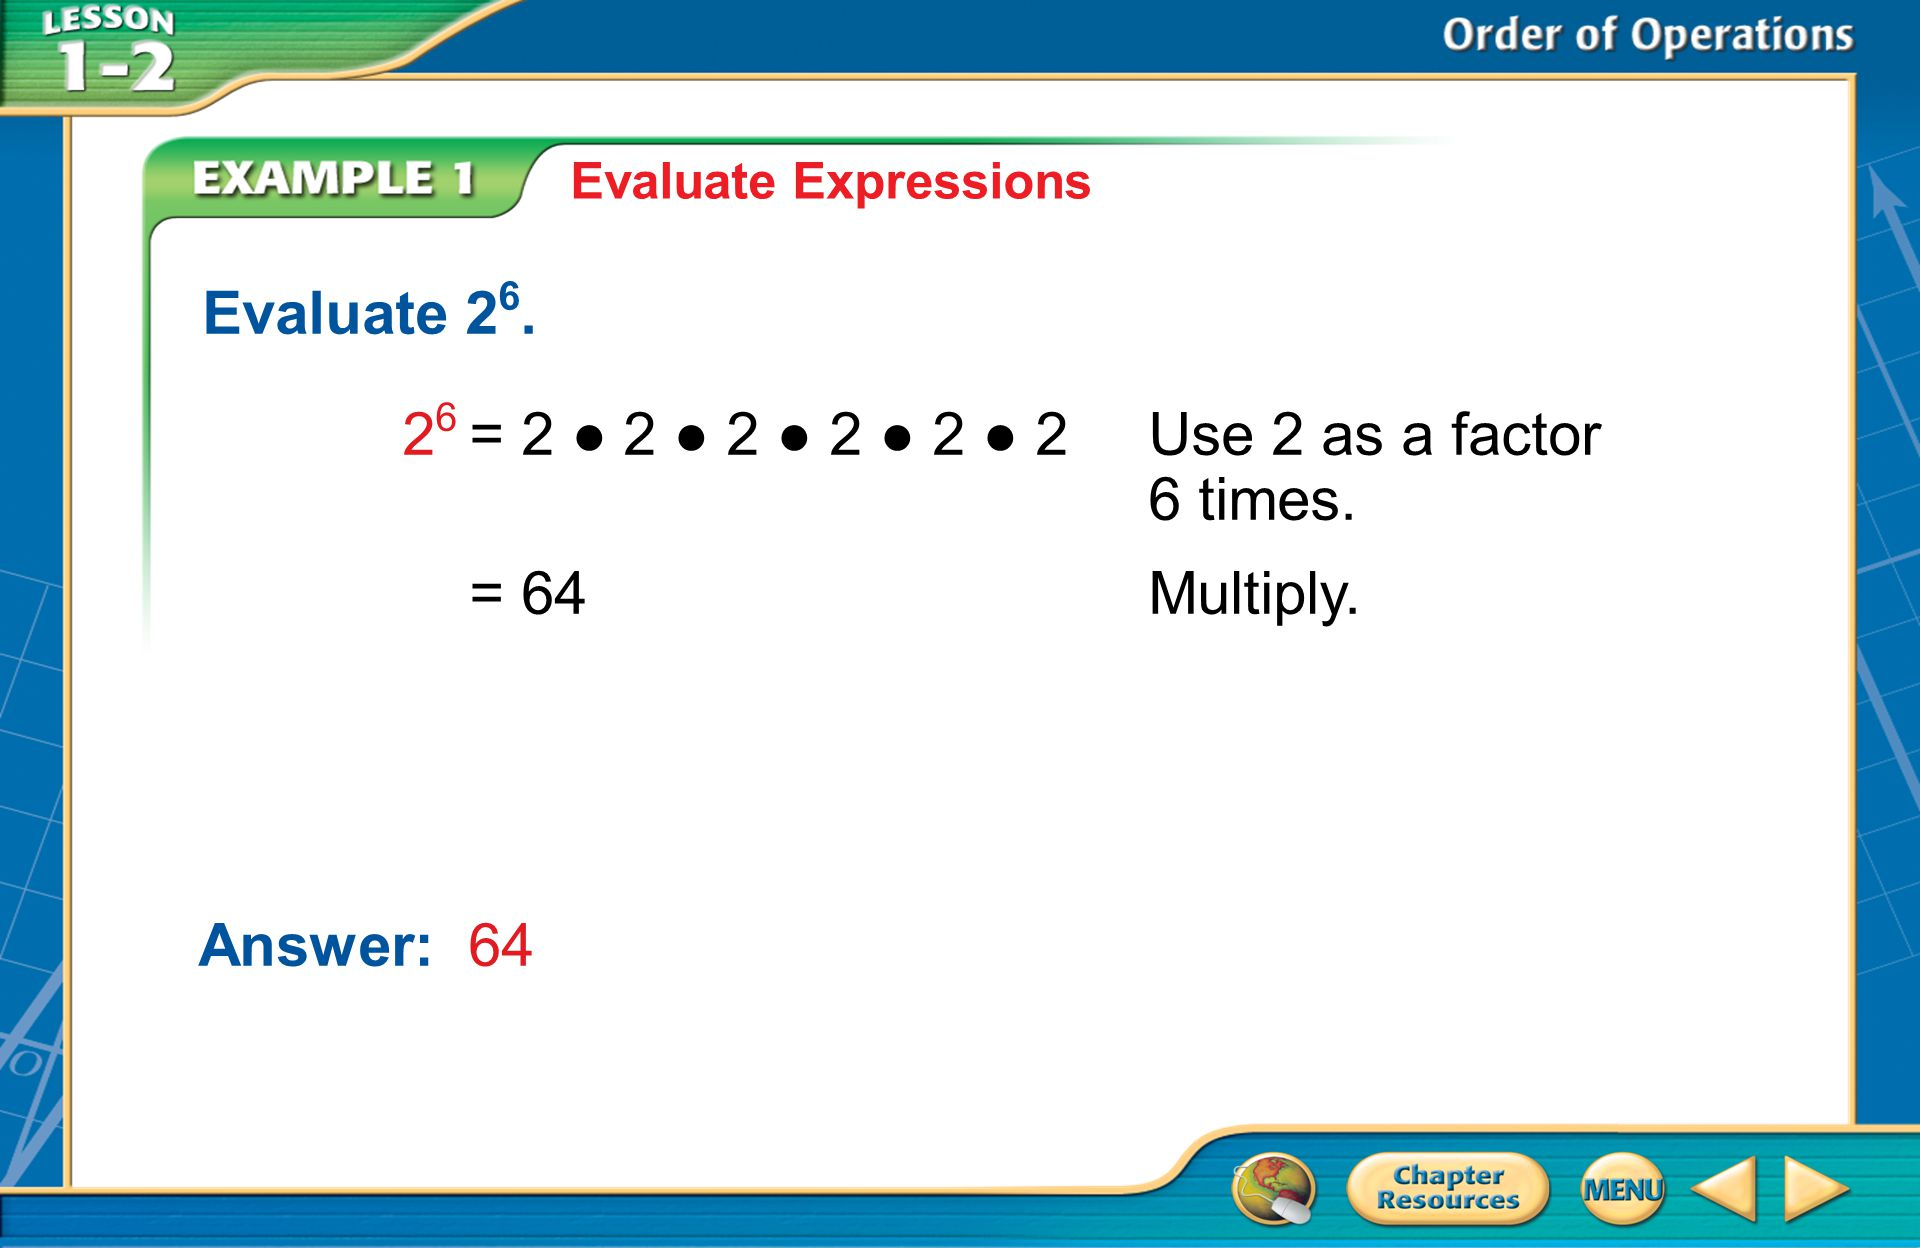 [Enter question here] Evaluate 4 4.